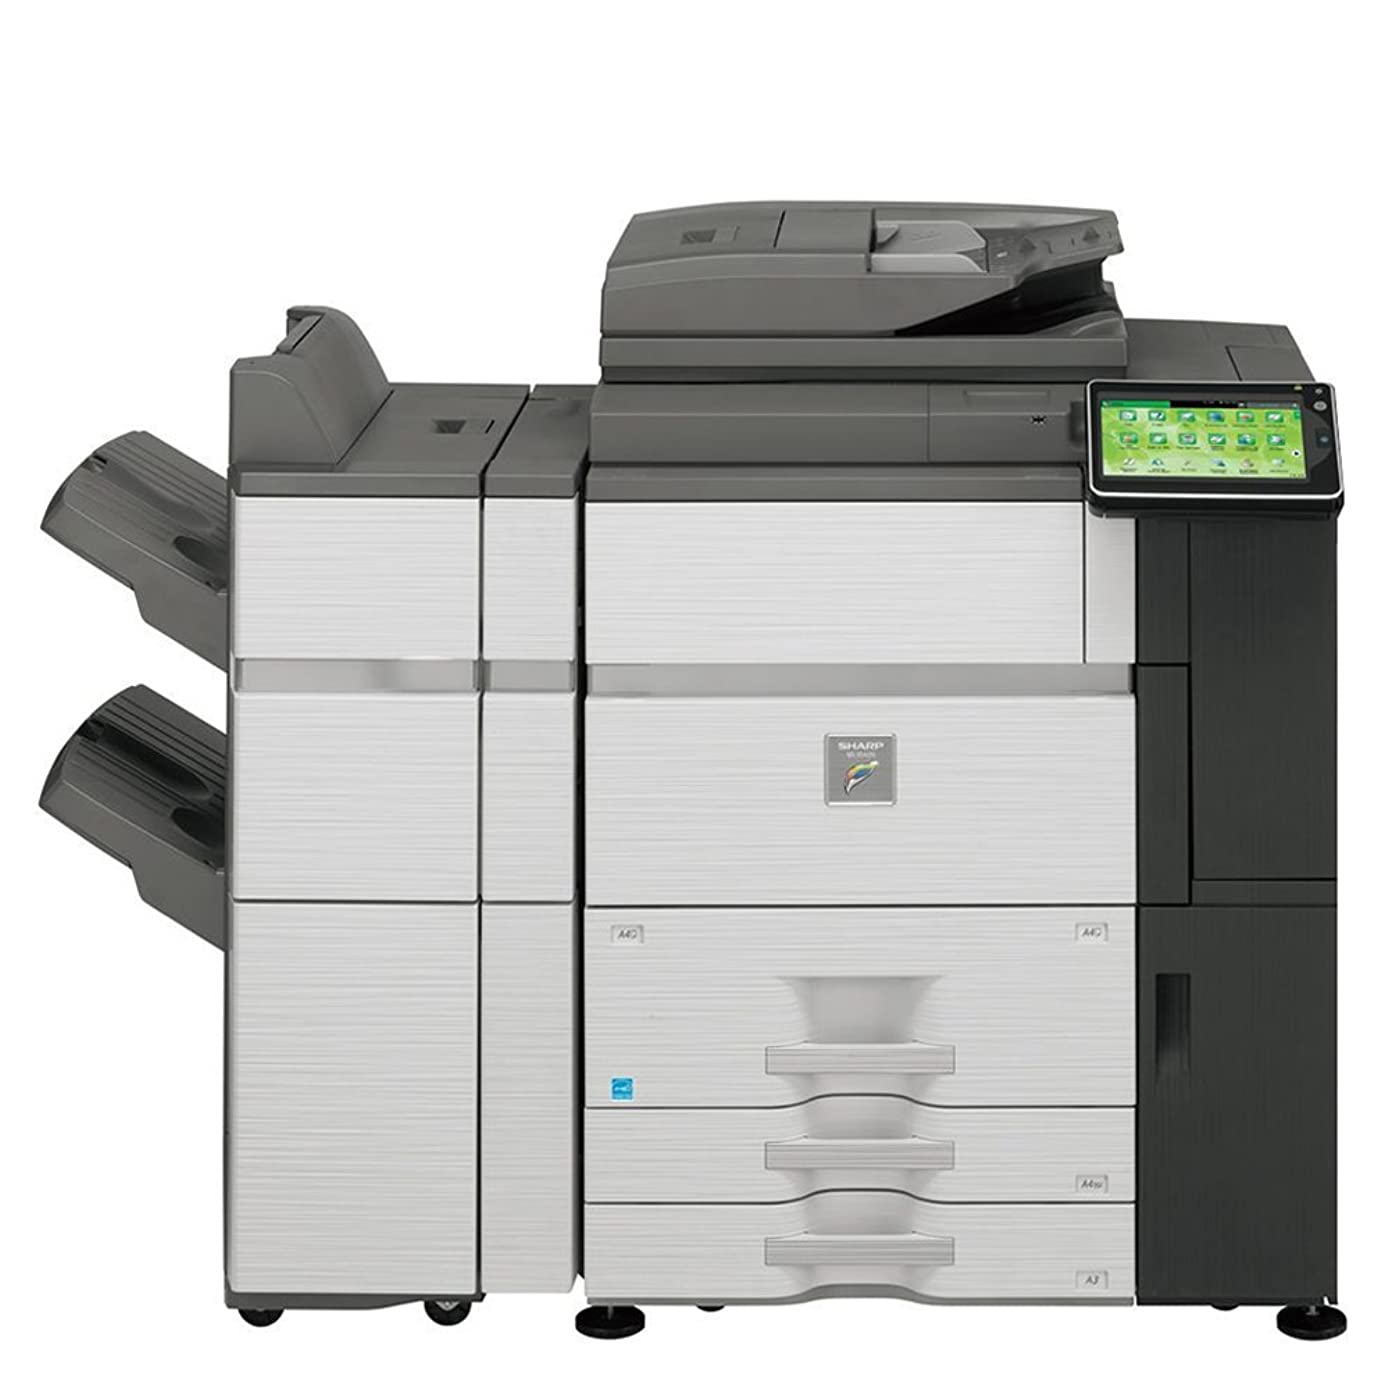 Sharp MX-6240N High-Speed A3 Color Laser Multifunction Copier - 62ppm, Copy, Print, Scan, 2 Trays, Tandem Tray, FN19 Stapler Finisher